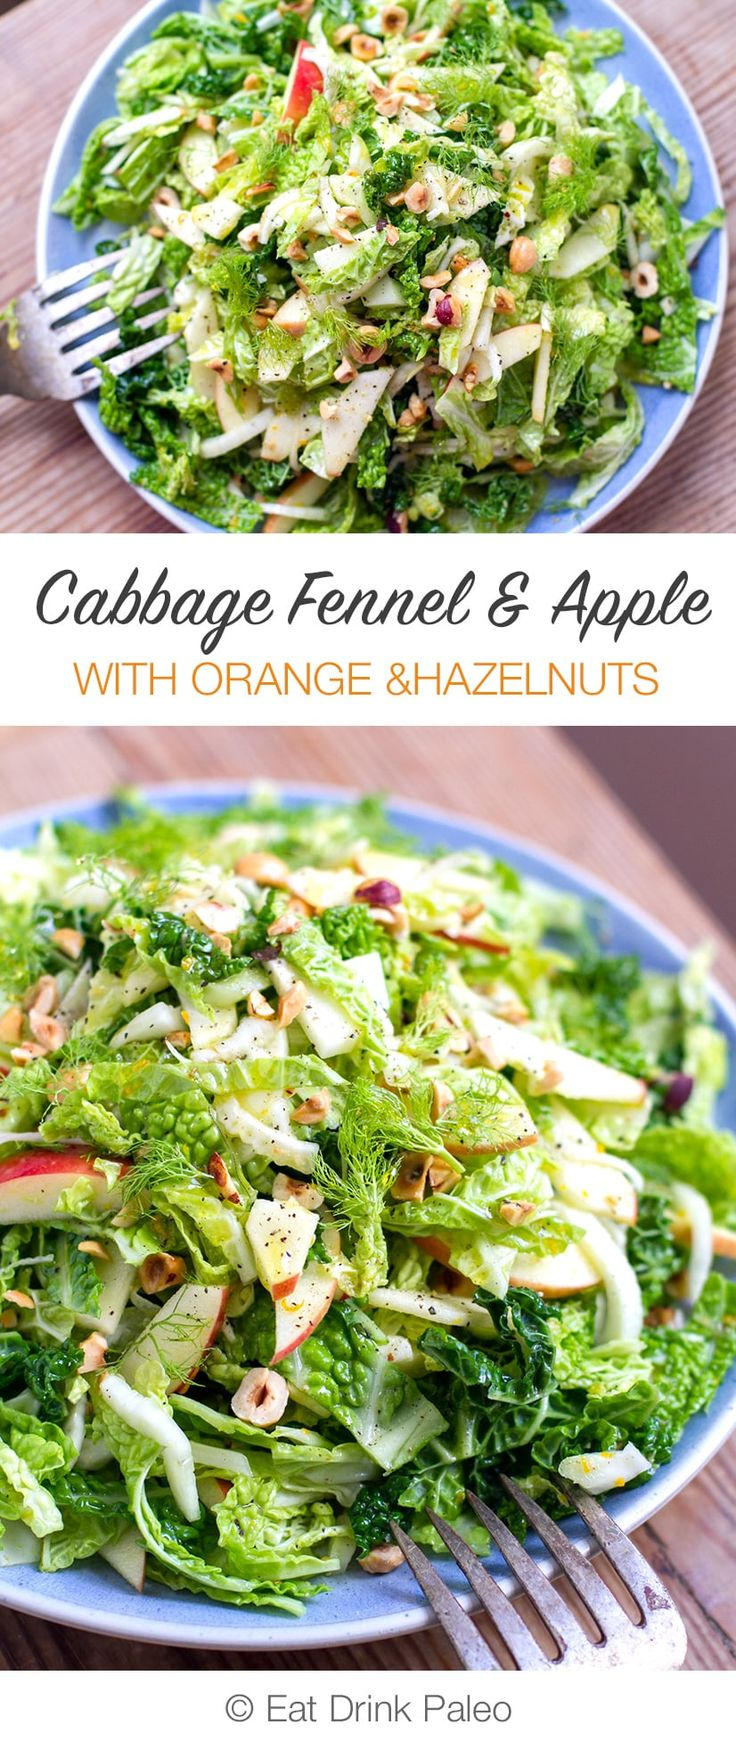 Cabbage Fennel and Apple Slaw With Orange and Hazelnut | http://eatdrinkpaleo.com.au/cabbage-fennel-apple-slaw-orange-hazelnut/